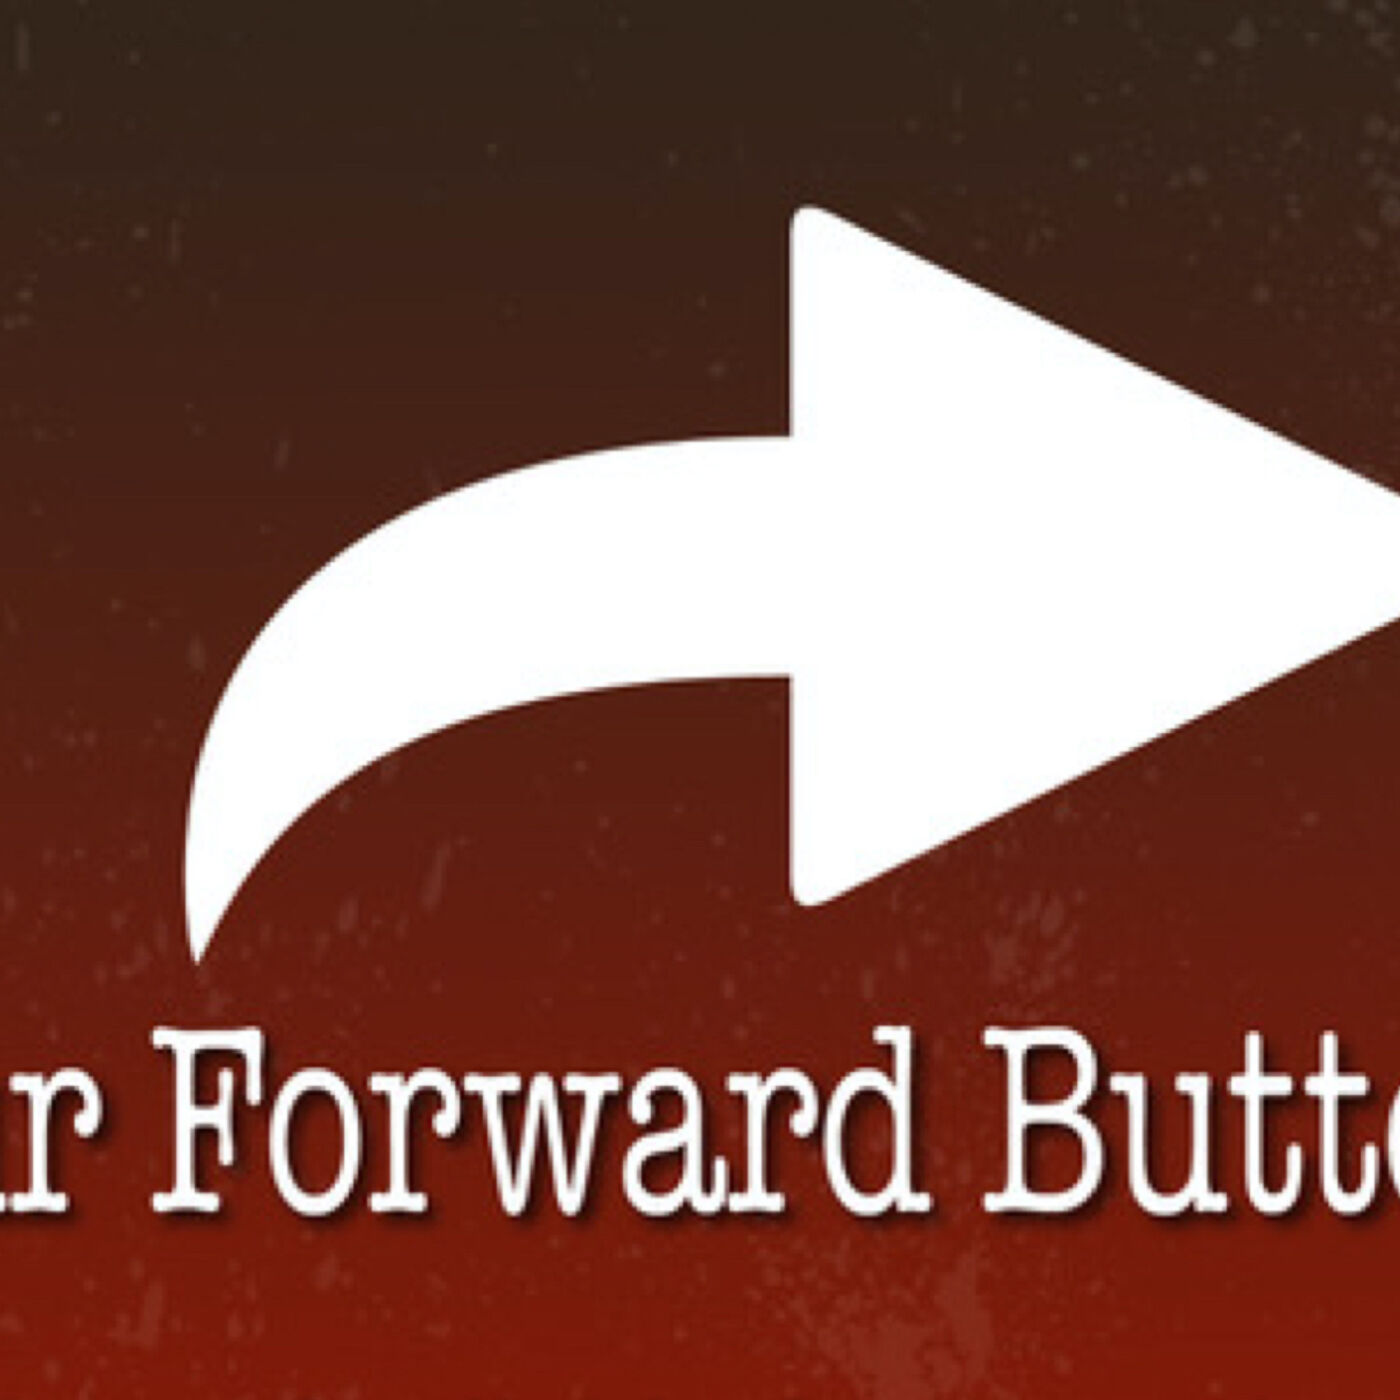 Our Forward Button